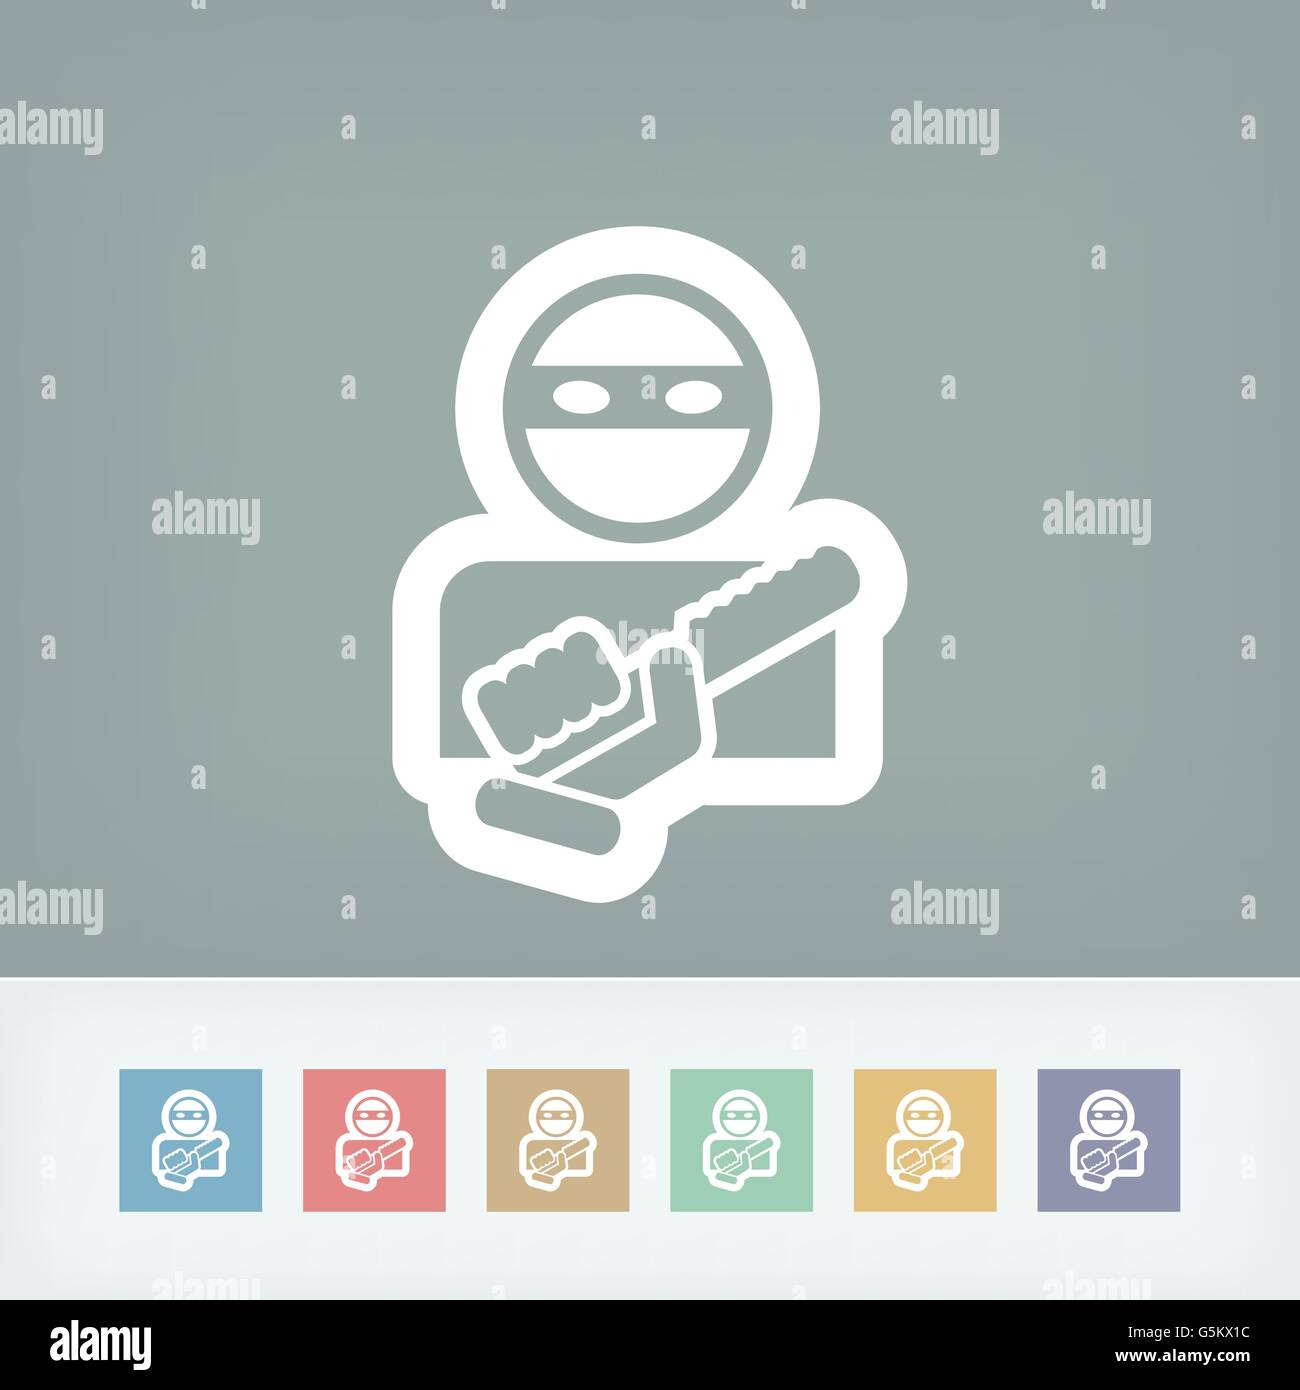 Armed bandit icon - Stock Vector